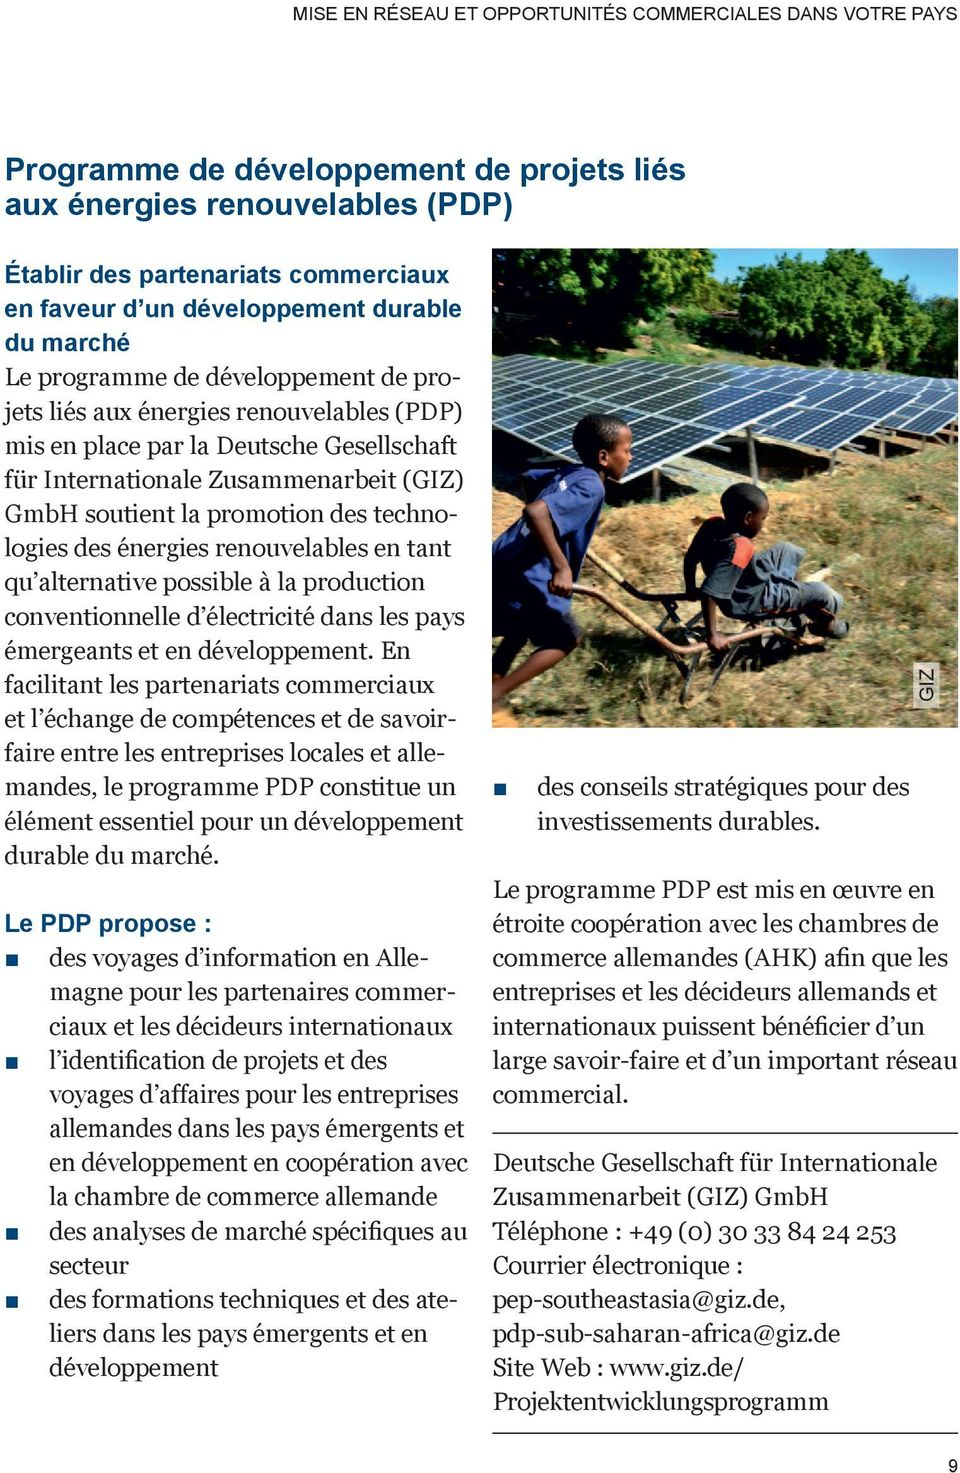 soutient la promotion des technologies des énergies renouvelables en tant qu alternative possible à la production conventionnelle d électricité dans les pays émergeants et en développement.